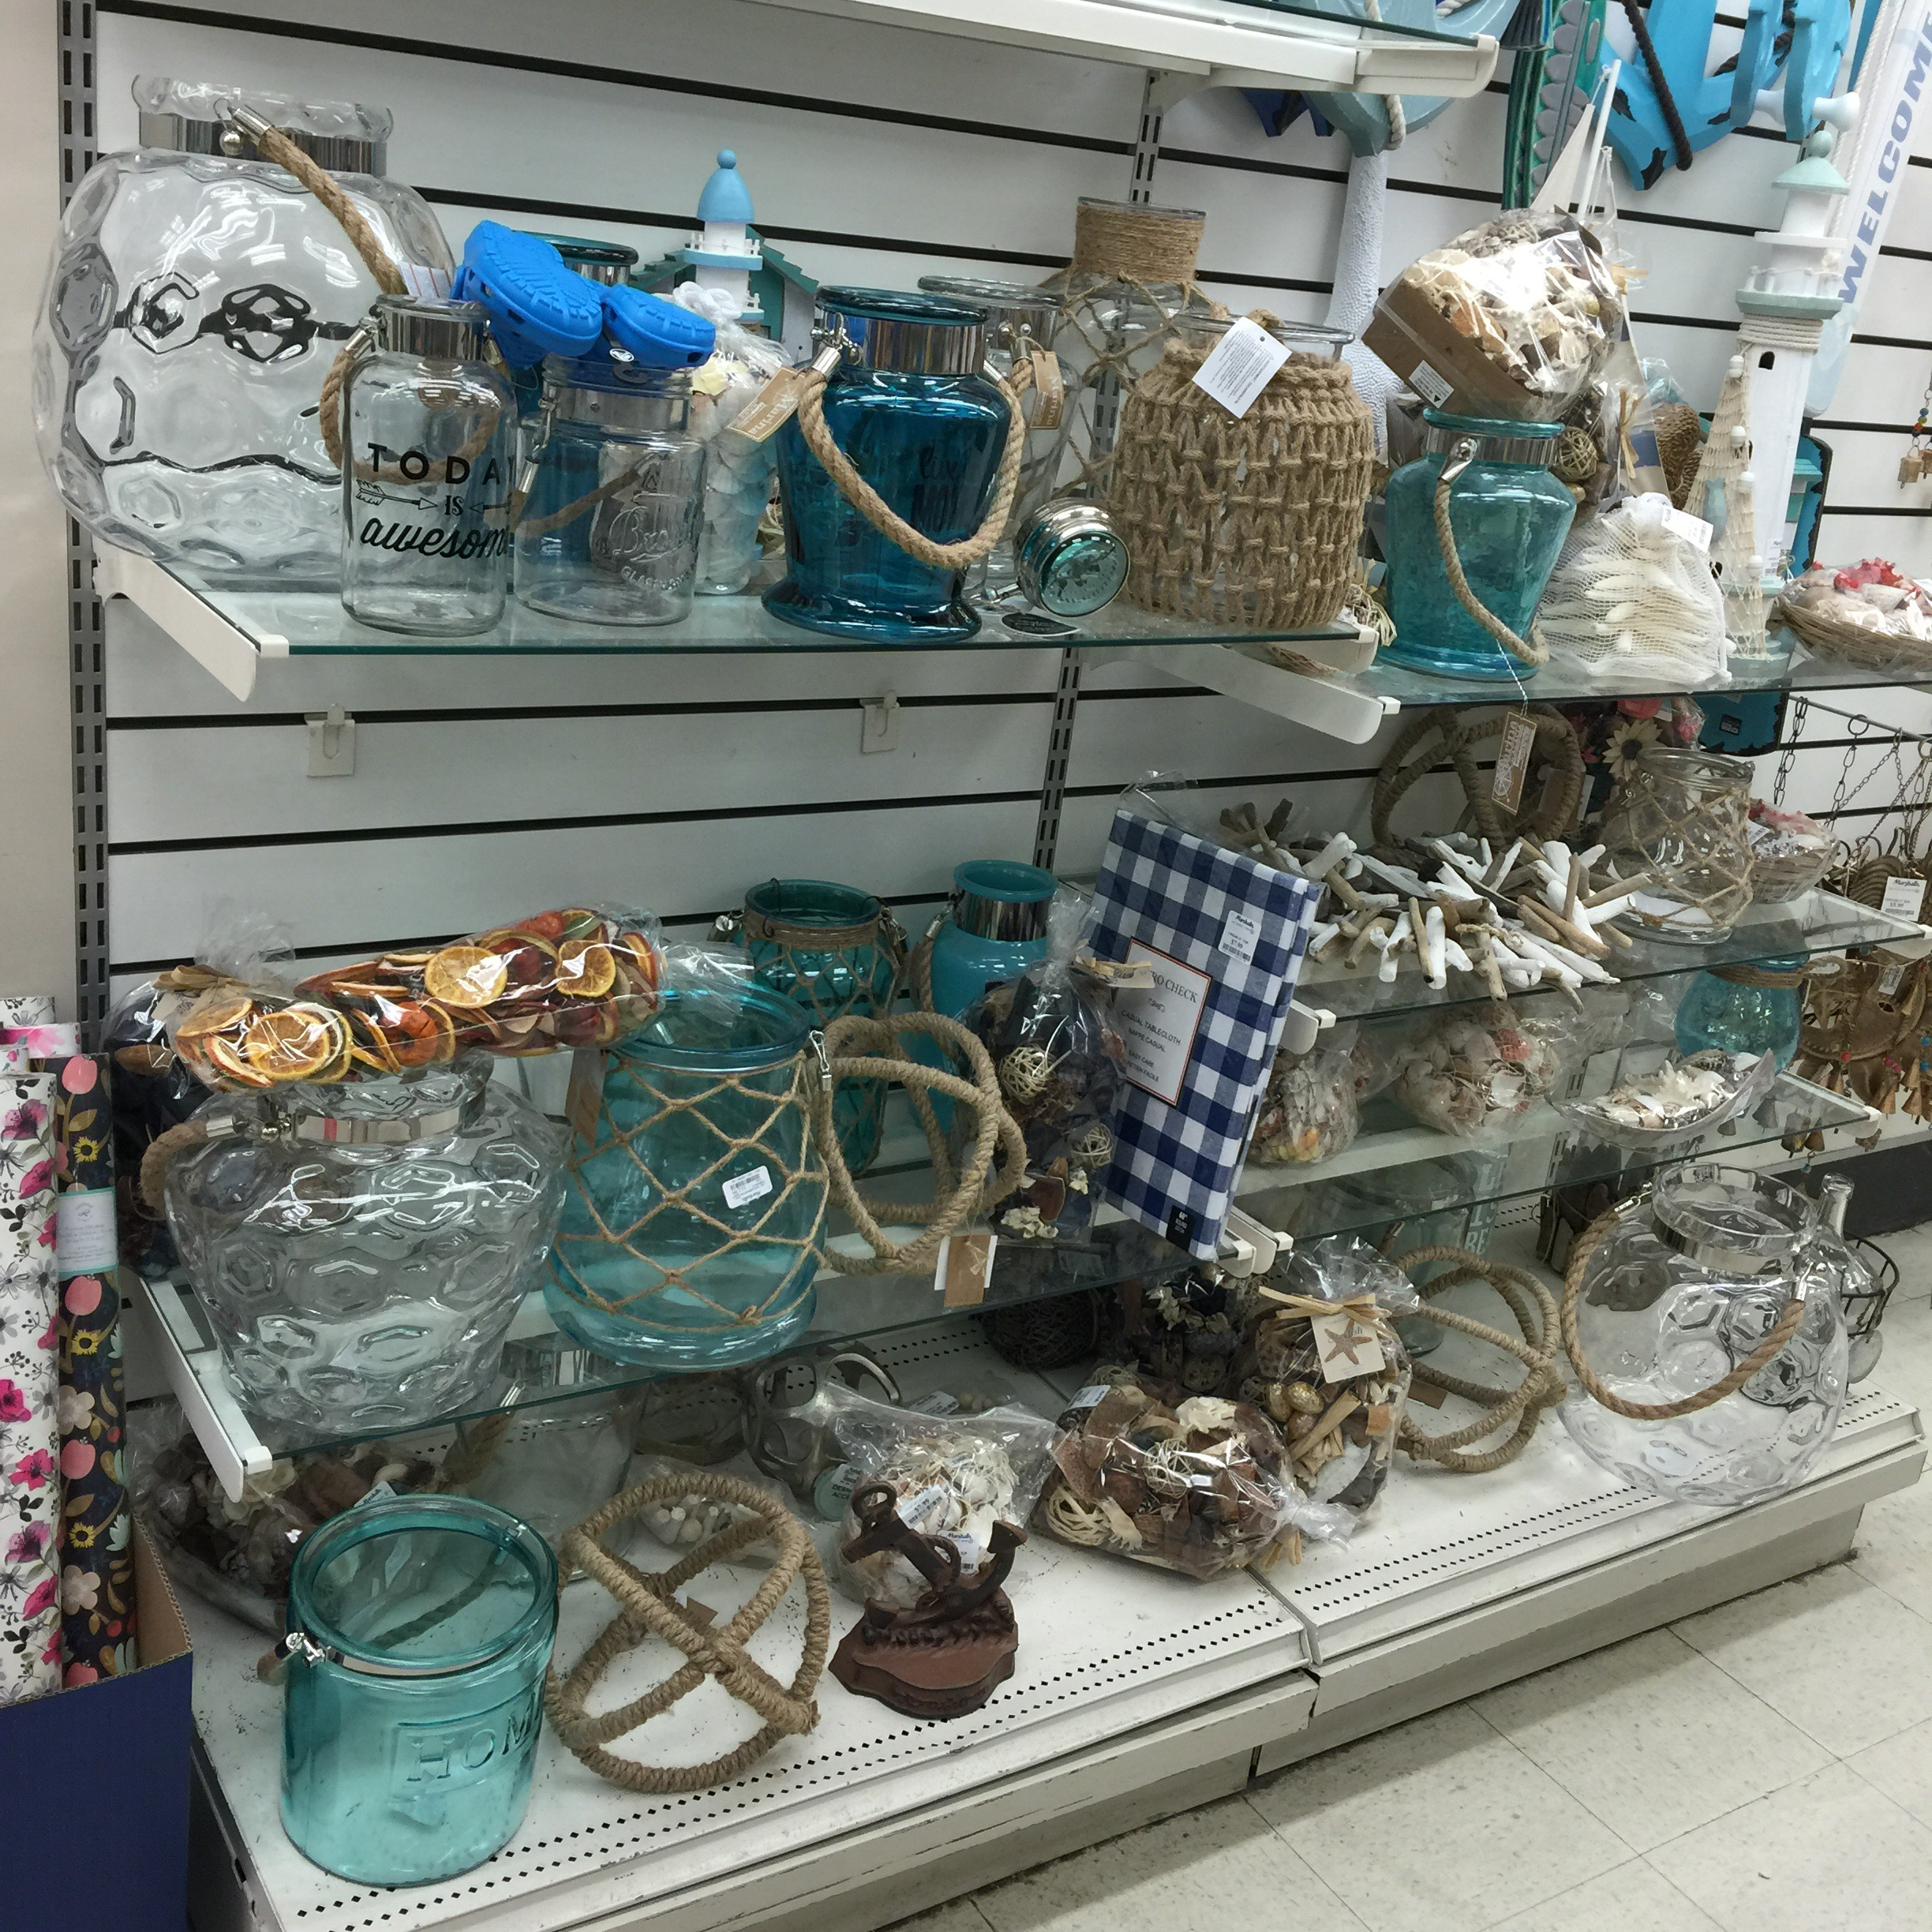 Marshall home decor 2014 on trend furnishings and home d 233 cor at t j maxx marshalls and the - Marshall home decor design ...